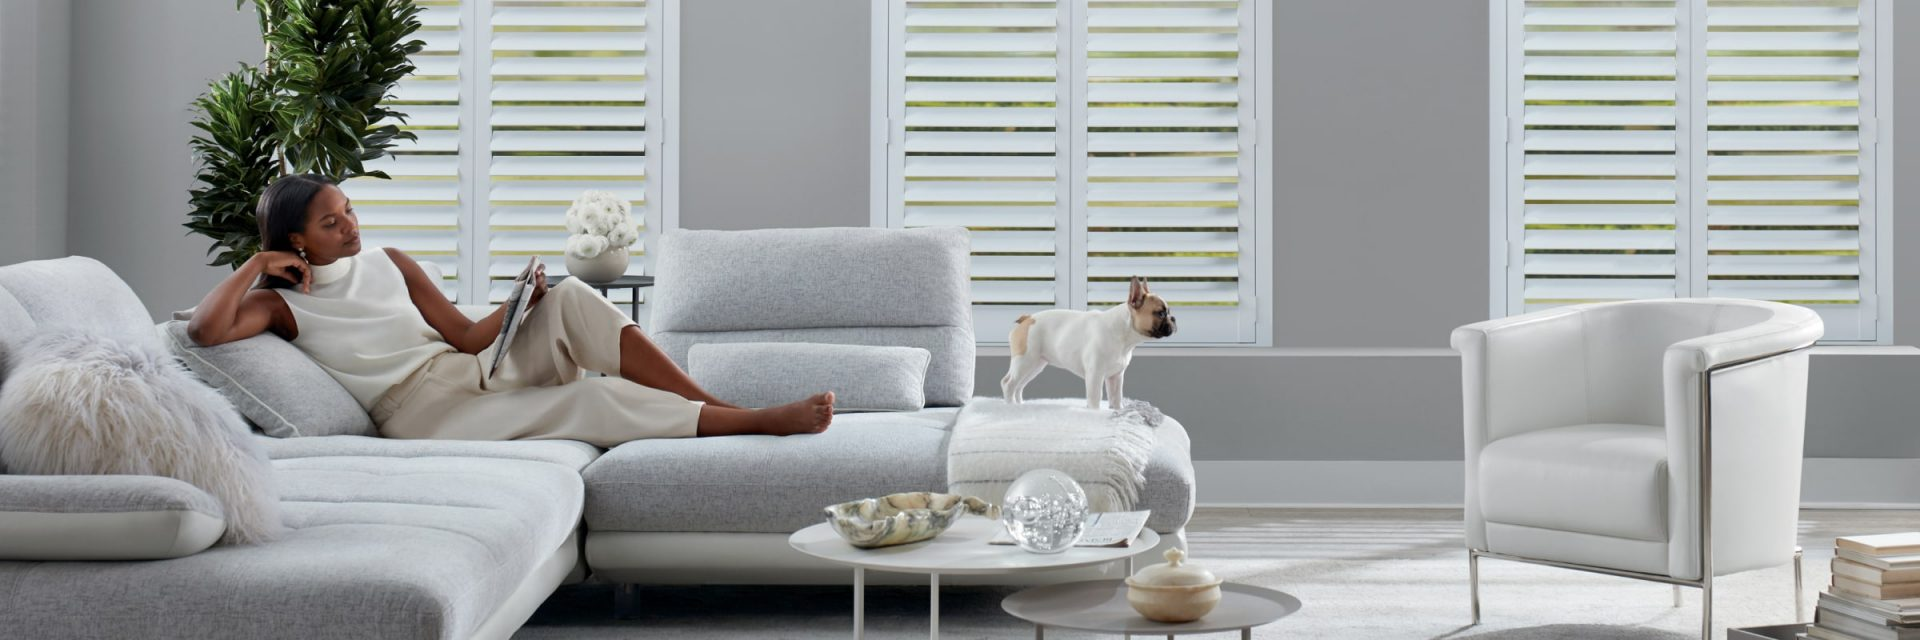 newstlye hybrid shutters with softclose